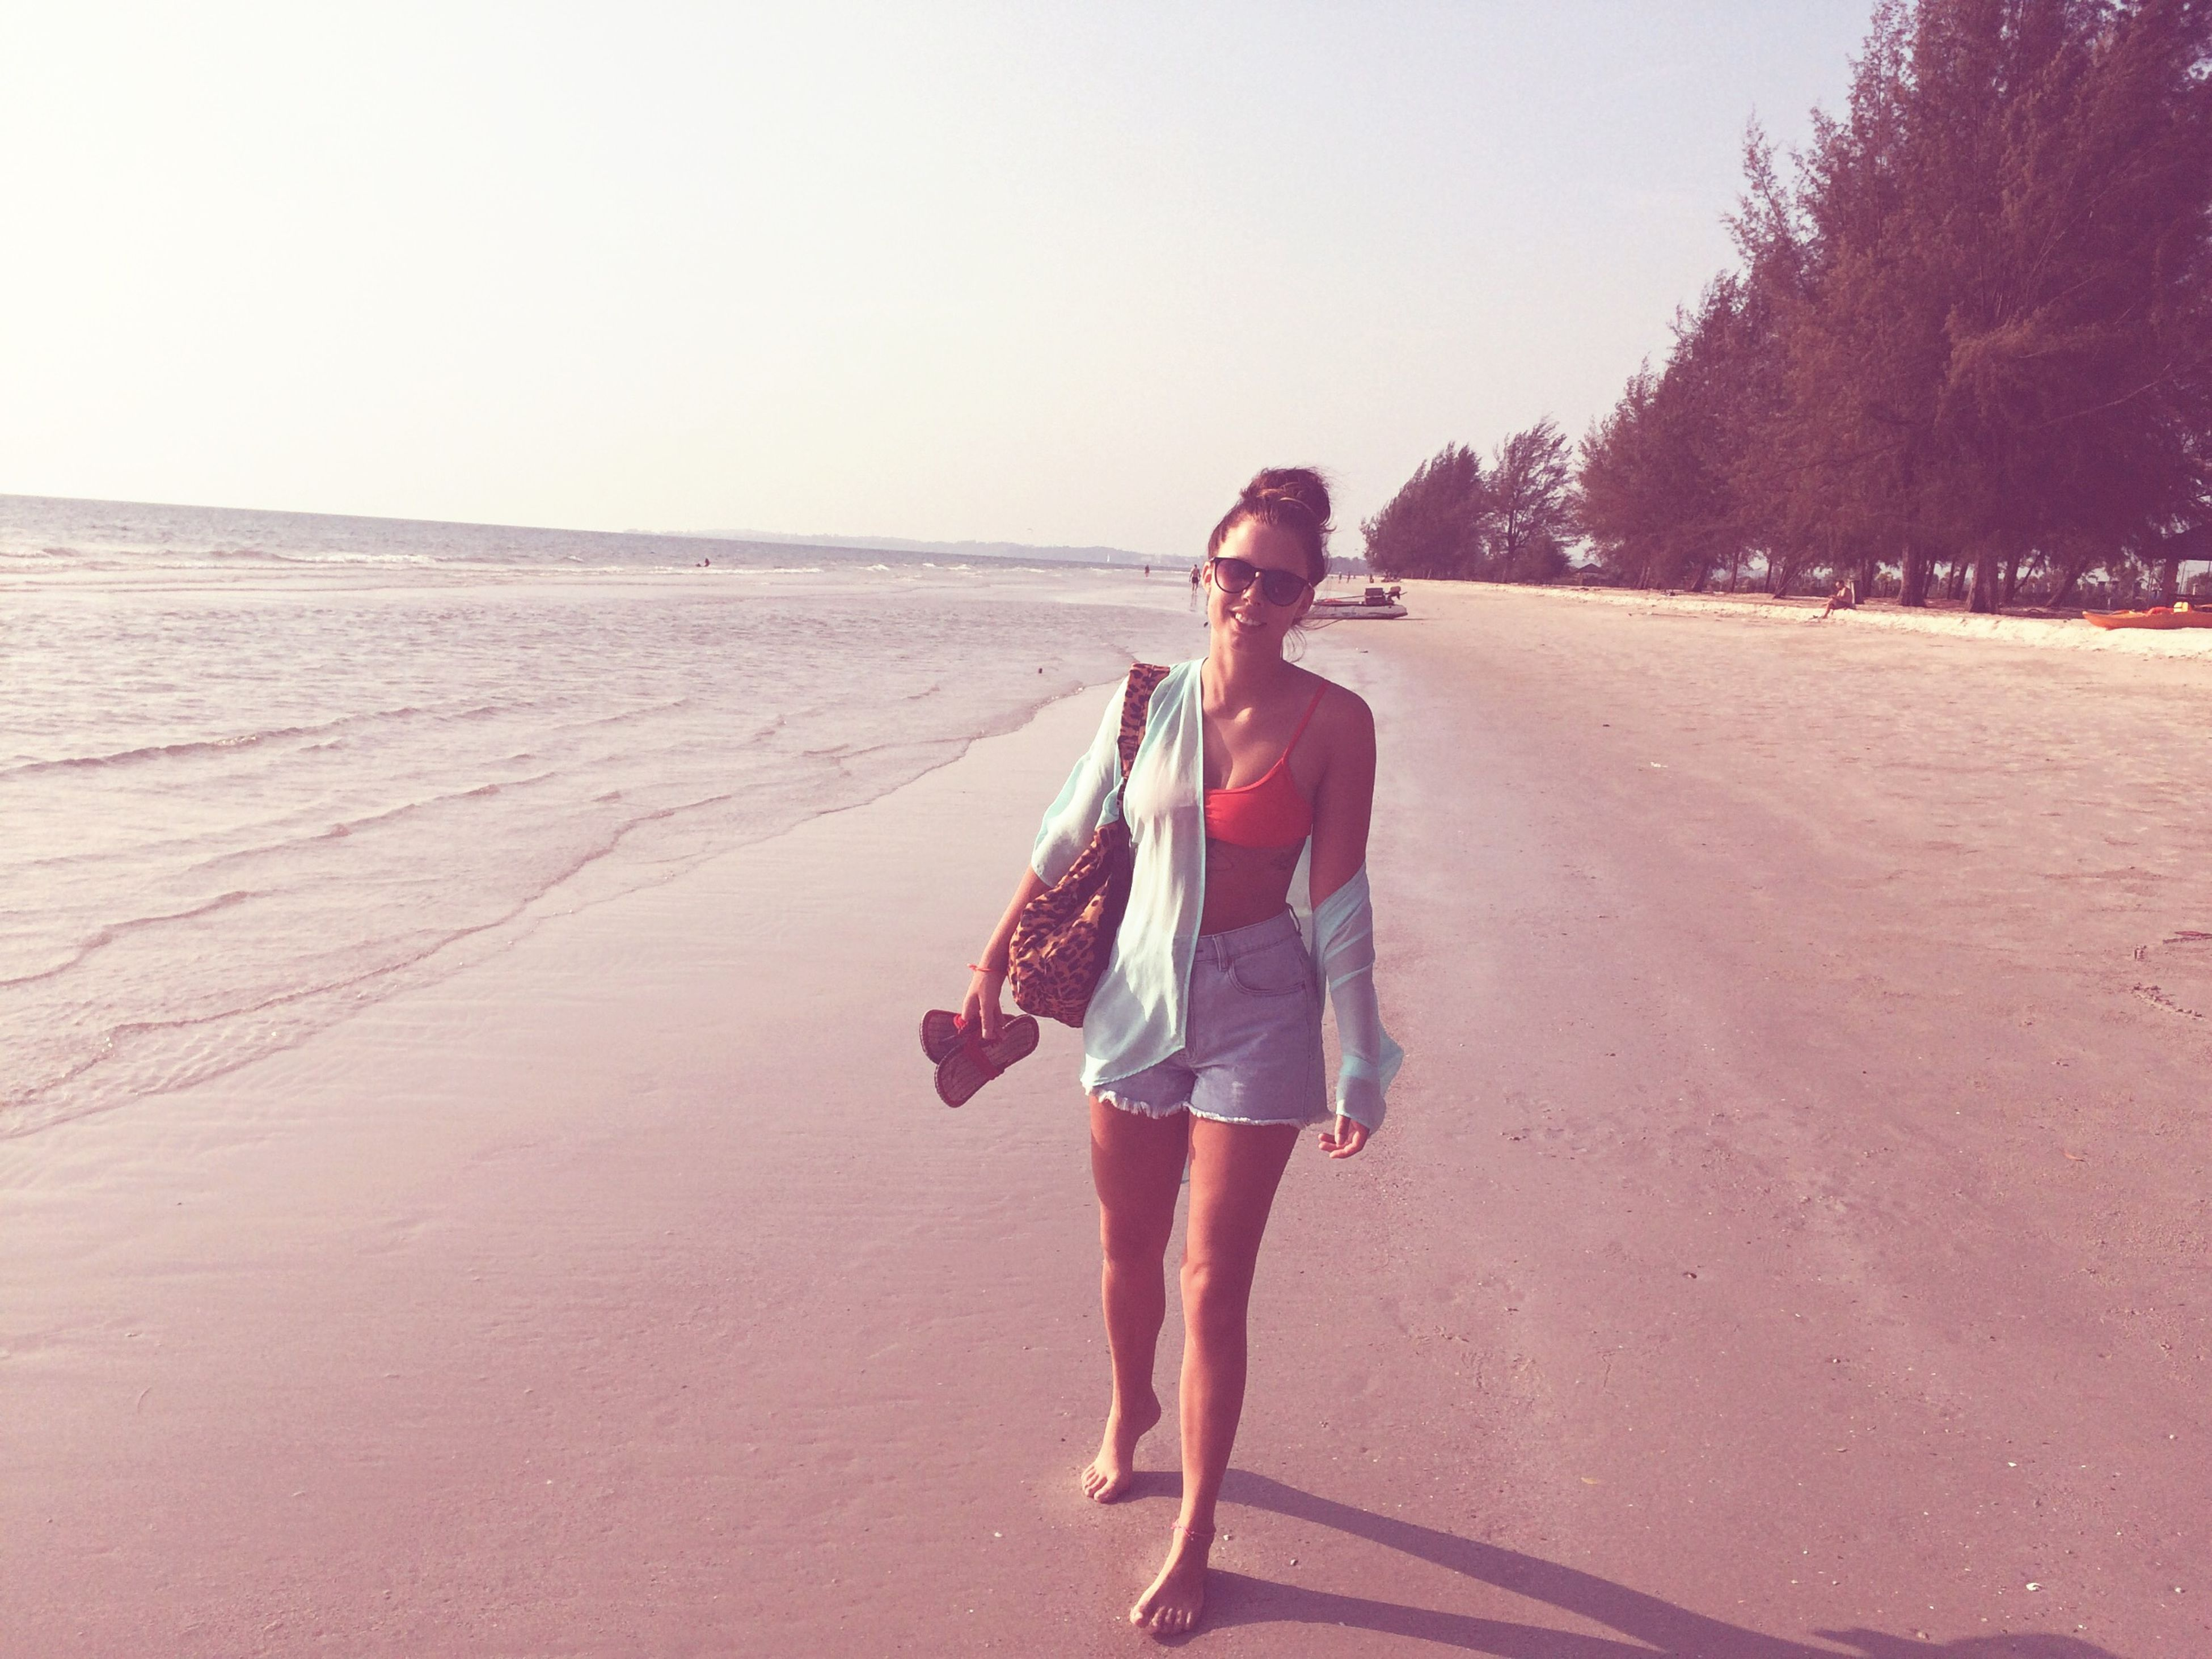 full length, lifestyles, casual clothing, leisure activity, young adult, standing, person, rear view, young women, front view, walking, beach, clear sky, sand, day, copy space, road, outdoors